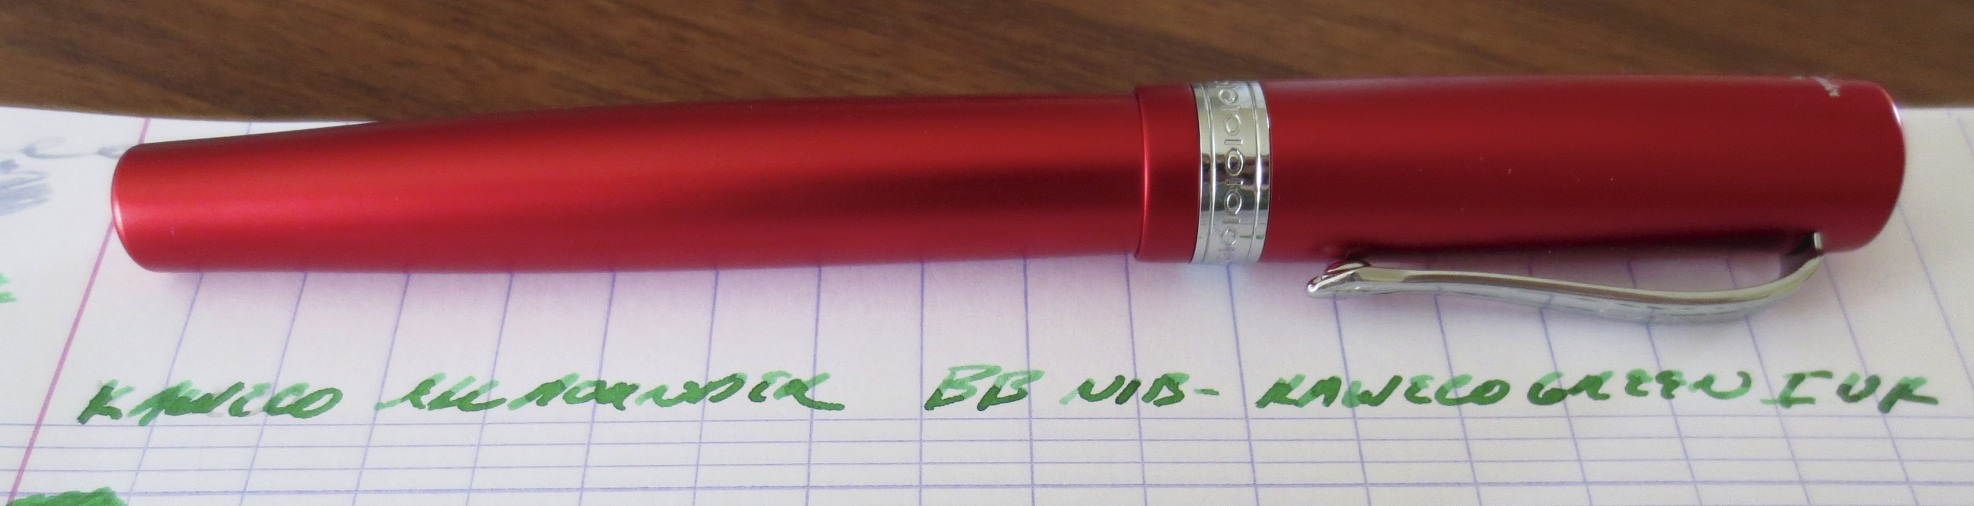 The Kaweco Allrounder is a gorgeous pen.  It's also solidly constructed from machined aluminum, with stainless trim.  I'm a sucker for red pens, so this one had me from the get-go.